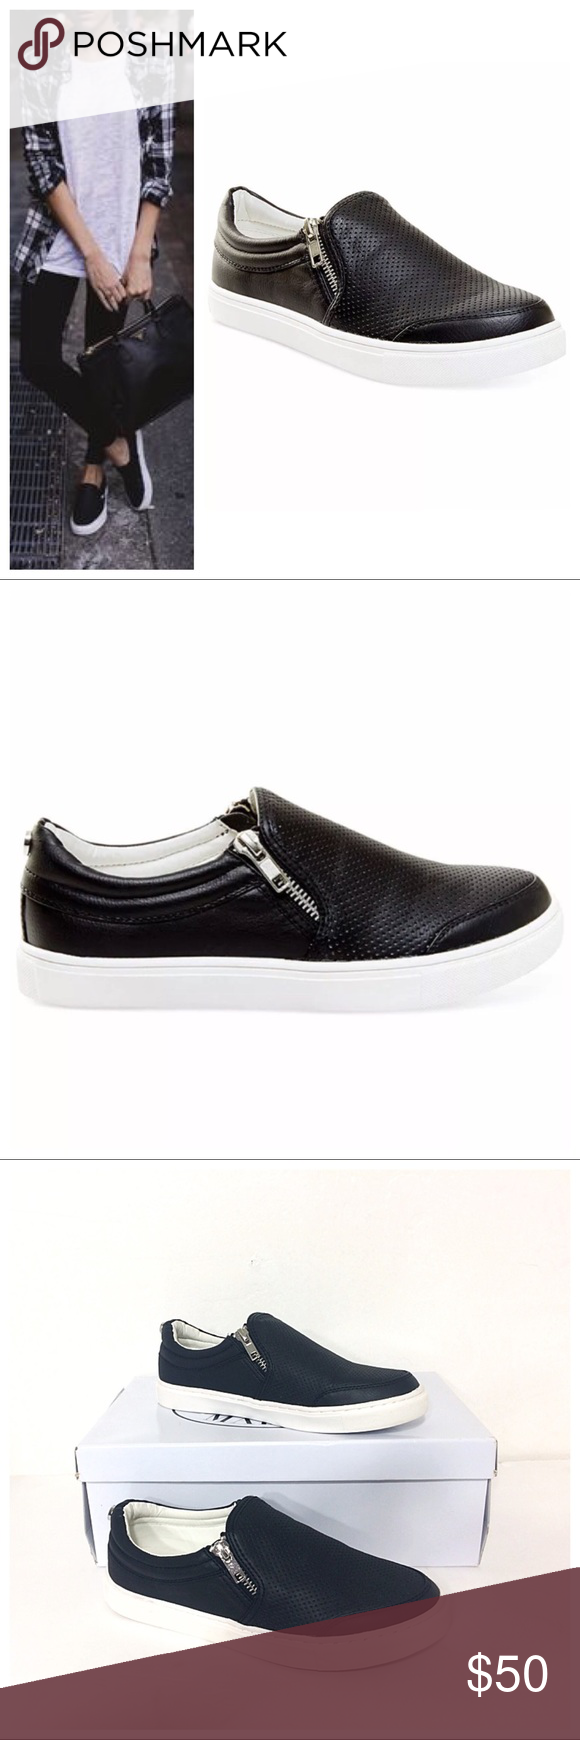 """NWT Steve Madden Ellias Black Slip On Zip Sneakers Brand new in Box Steve Madden """"Ellias"""" Perforated Woman's Slip-On Sneaker in black. Size 6 M but fits like 5.5 M  A perforated upper and twin exposed zippers lend edgy, street-chic style to a slip-on sneaker that instantly updates your casual wardrobe.  Round closed-toe slip-on flat sneakers Zipper closure at side instep; perforated details at upper Manmade upper; rubber sole Retailed for $69.00 Steve Madden Shoes Sneakers"""